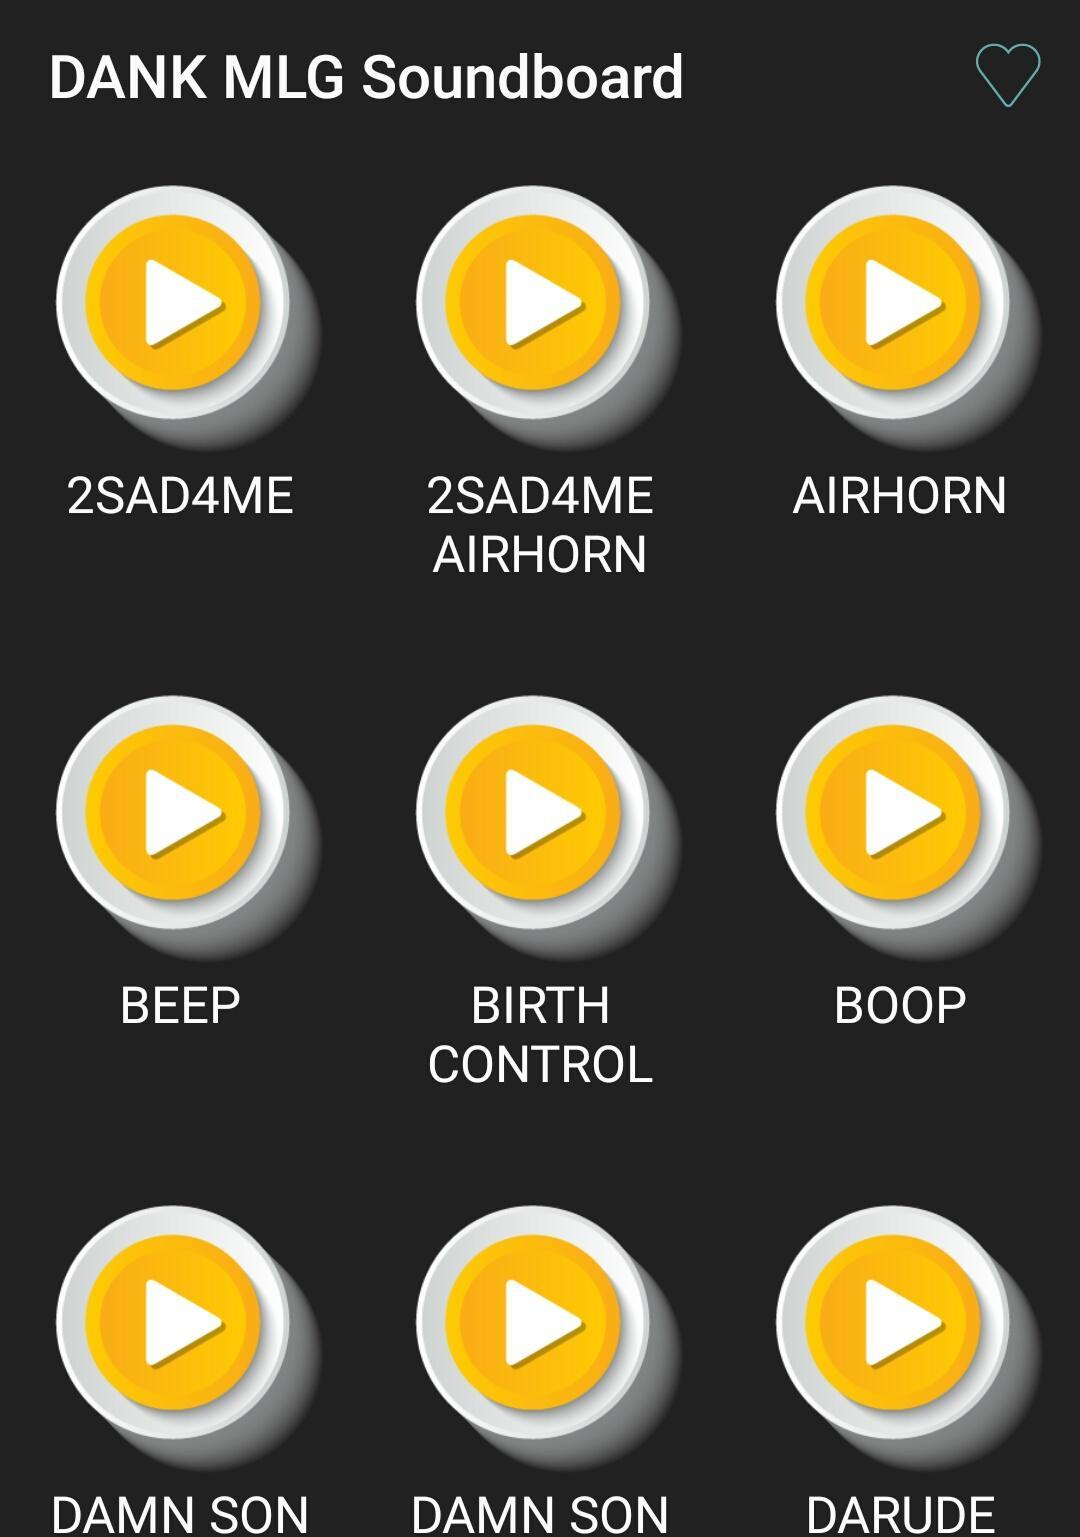 DANK - MLG Soundboard for Android - APK Download